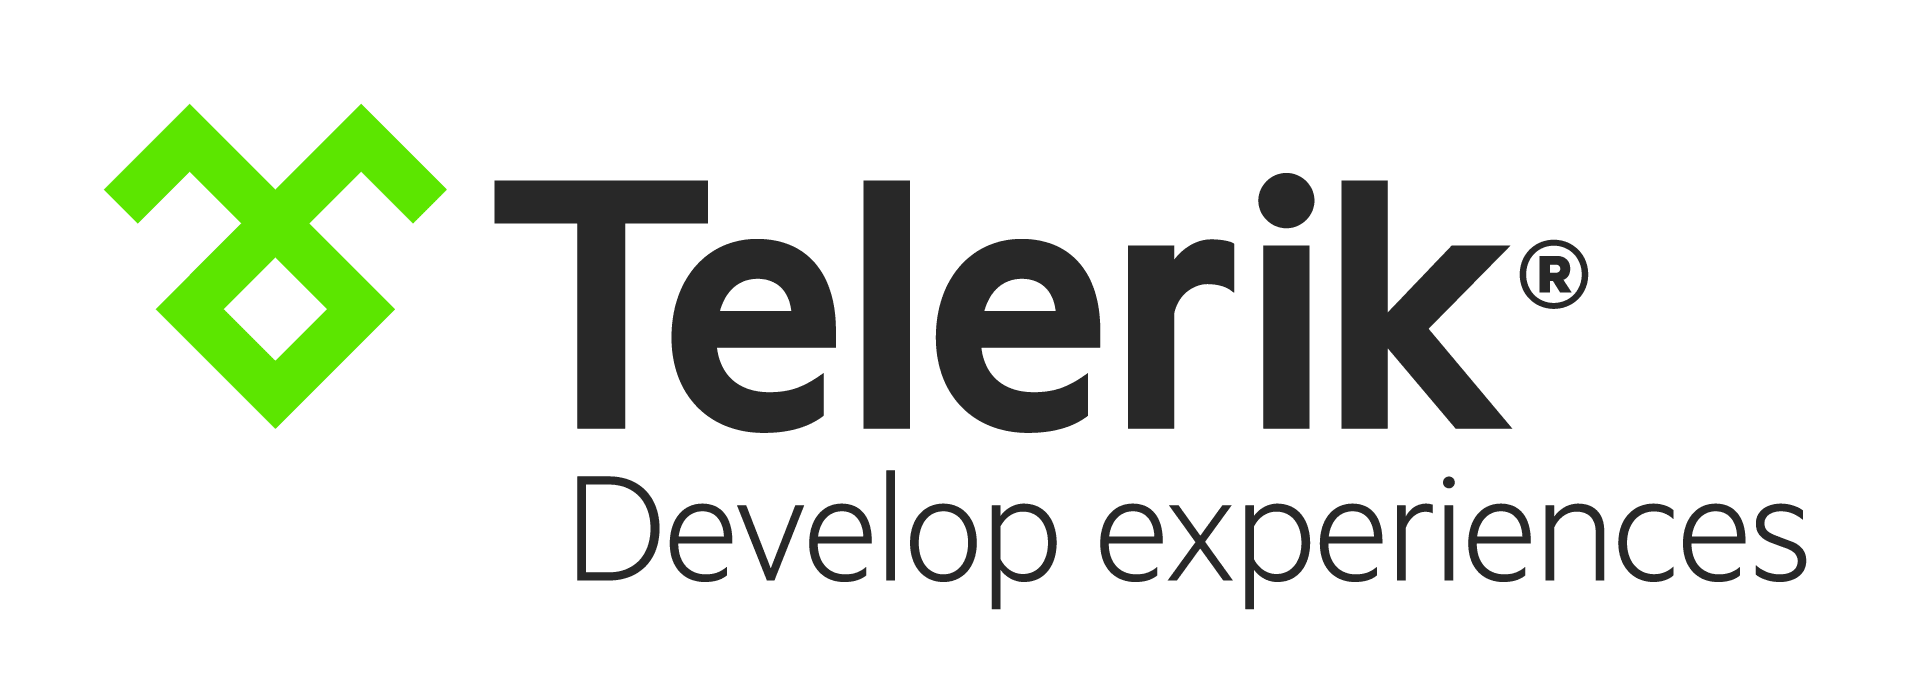 Telerik Platform Receives New Cloud Mobile Development Features